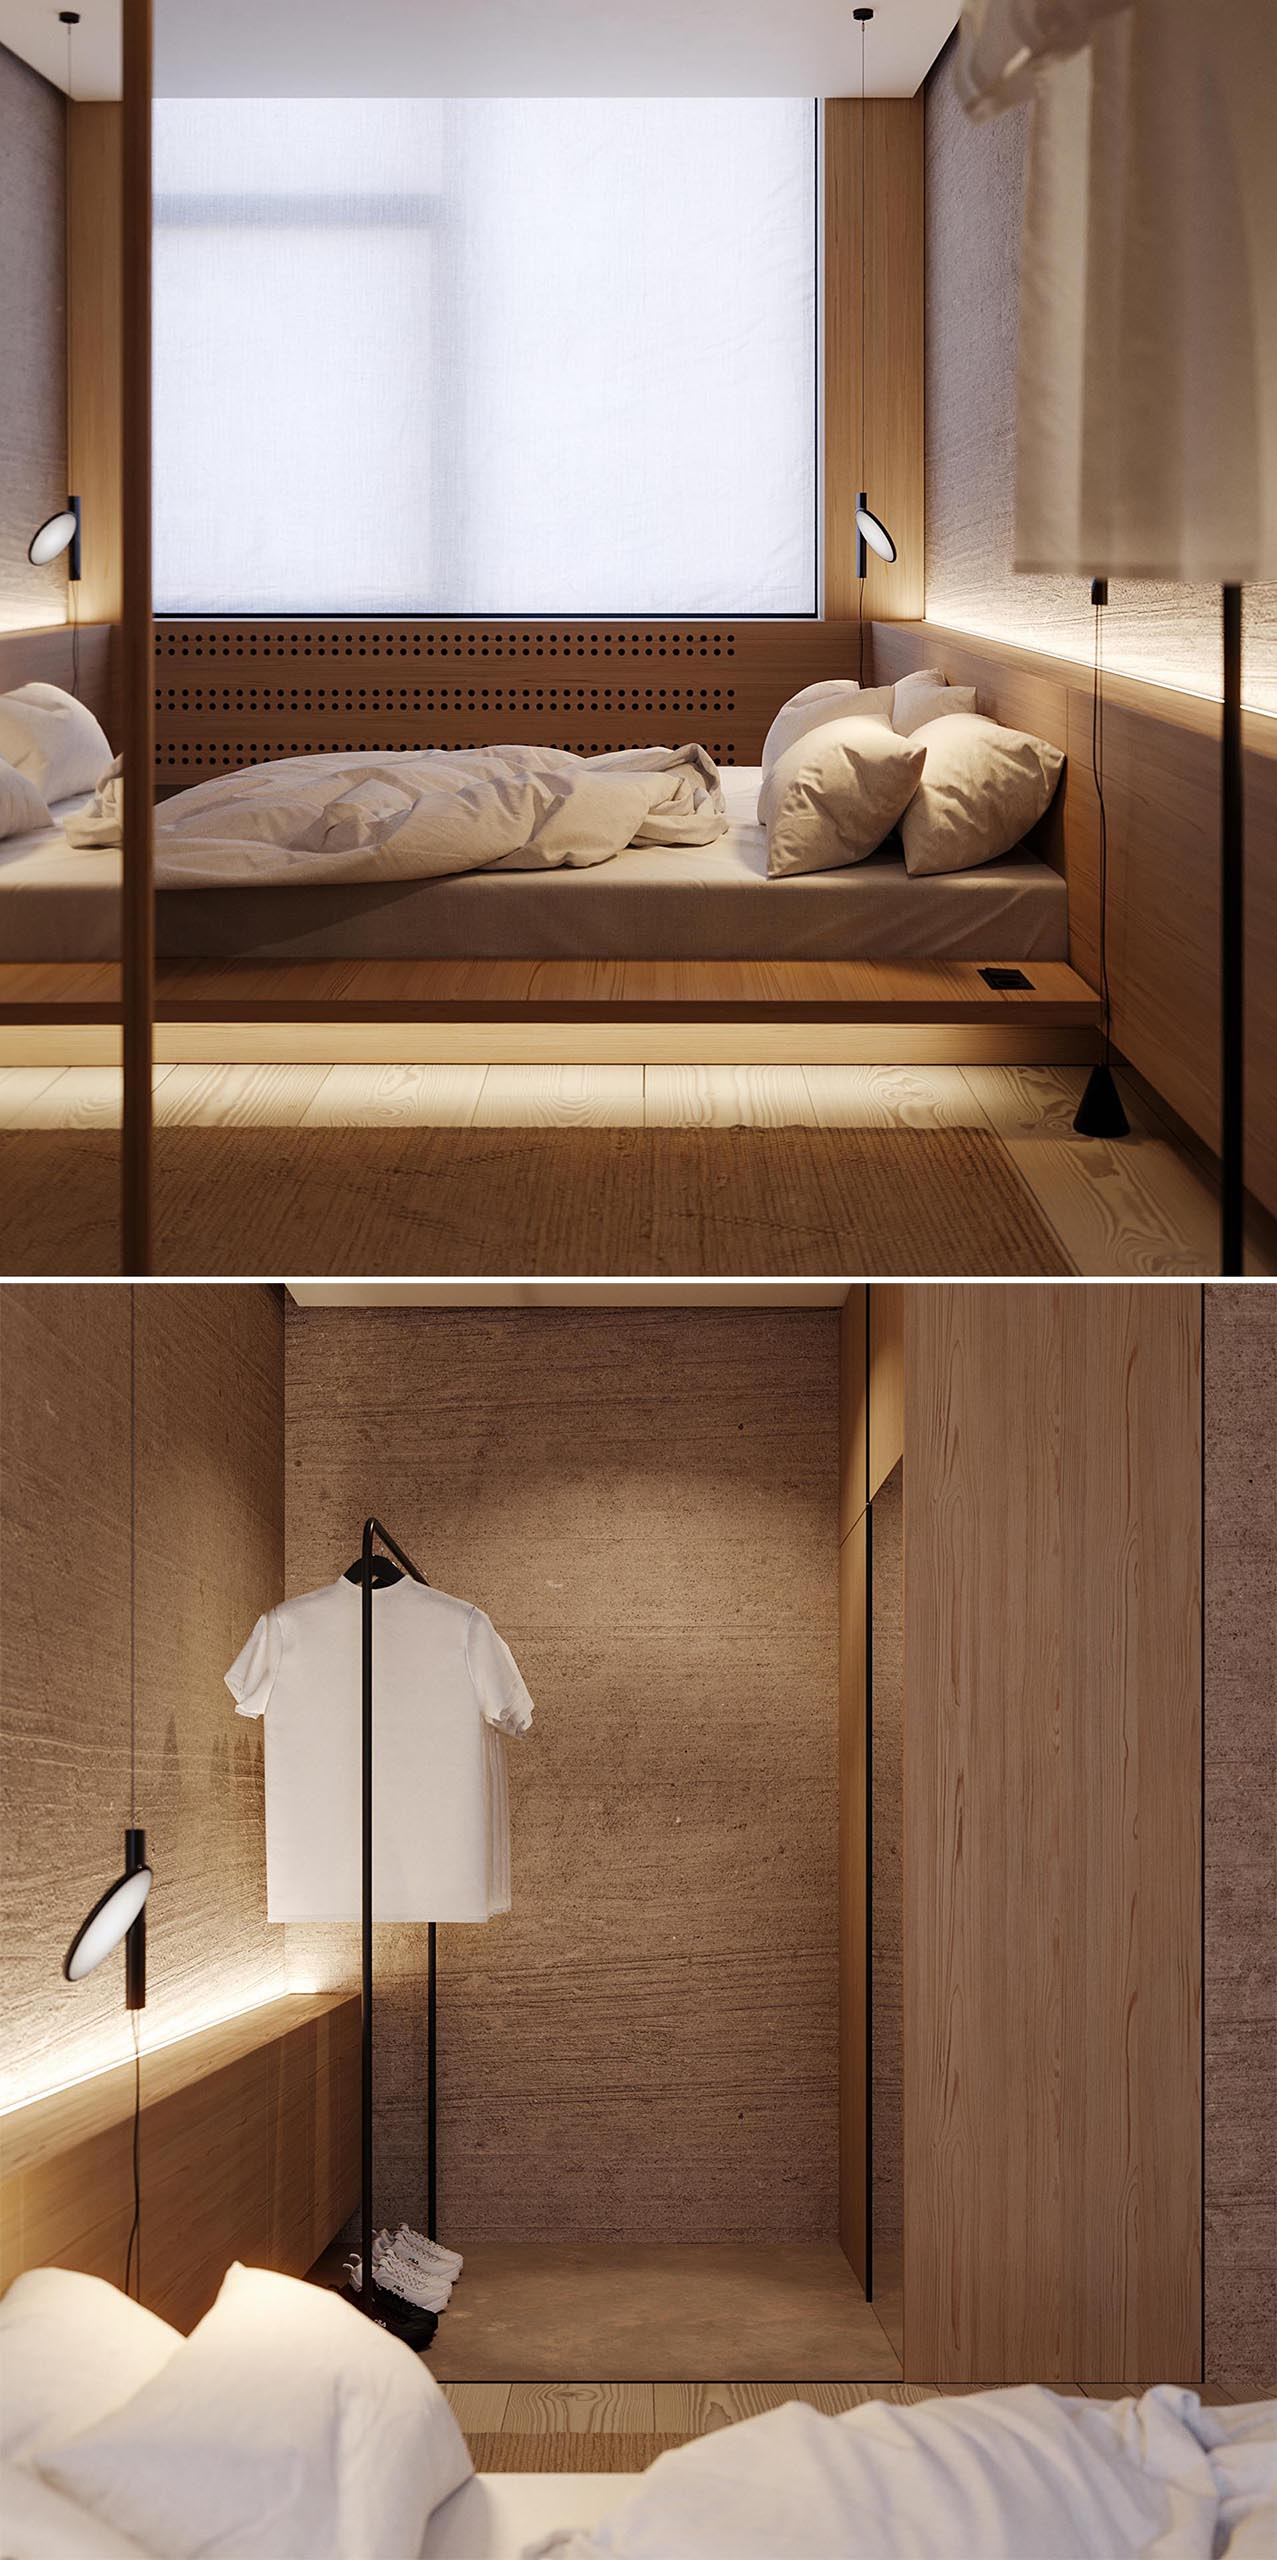 A wood headboard with LED lighting lines the wall and acts as a small shelf.